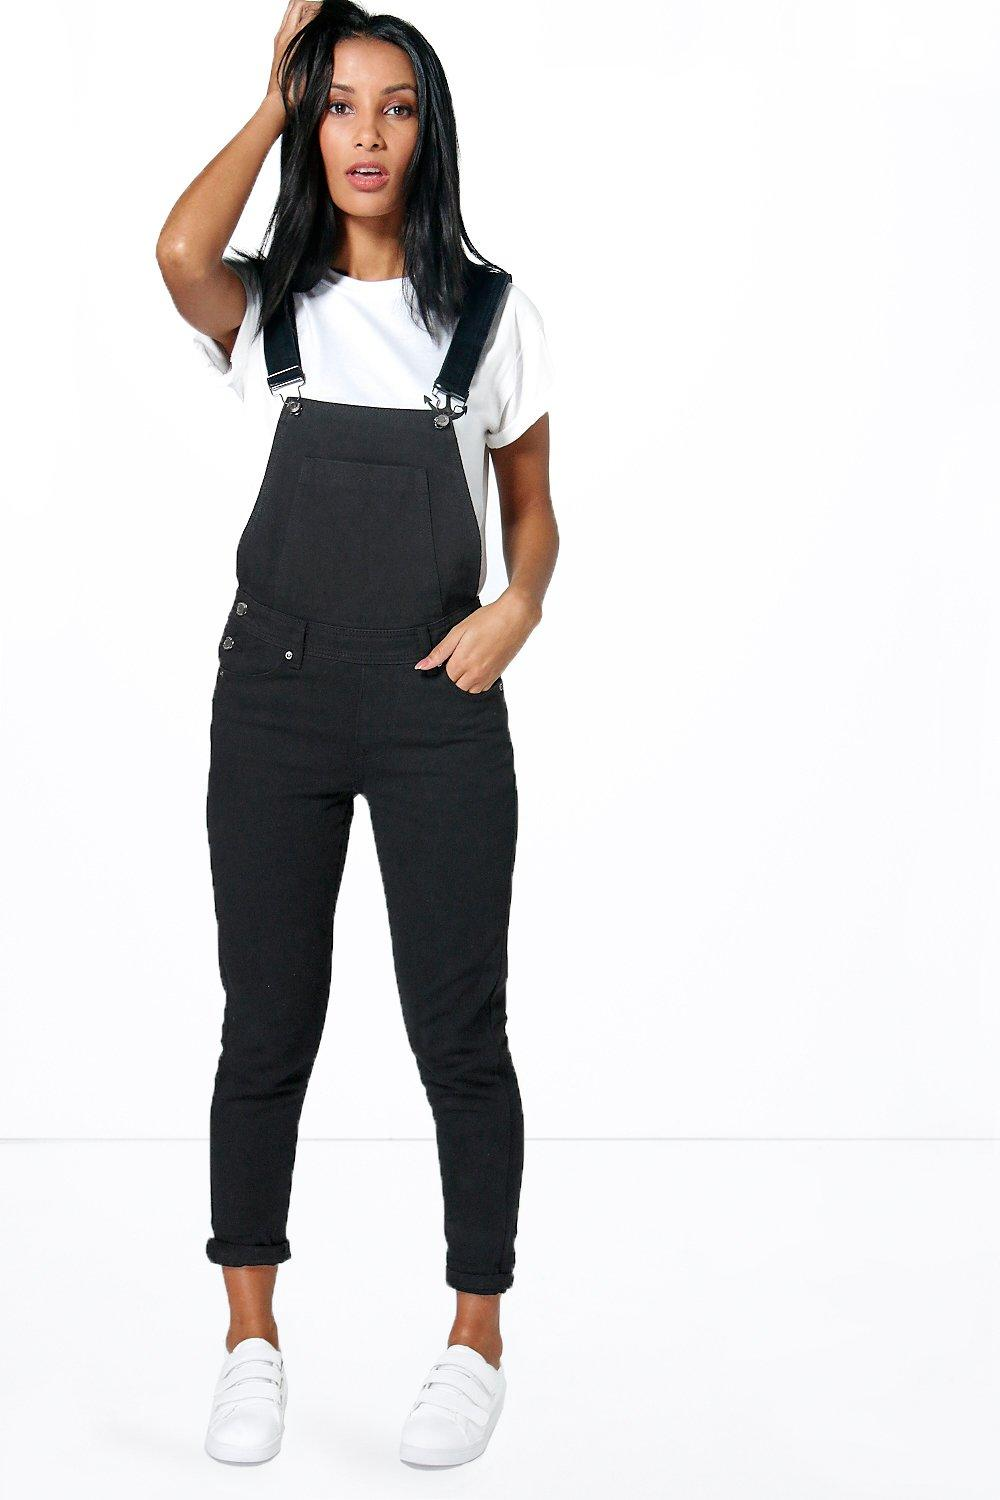 The Fresh Prince was right: you can't go wrong with a pair of dungarees. Our collection offers up our favourite designs, from classic vintage denim dungarees and black dungarees to contemporary distressed styles.